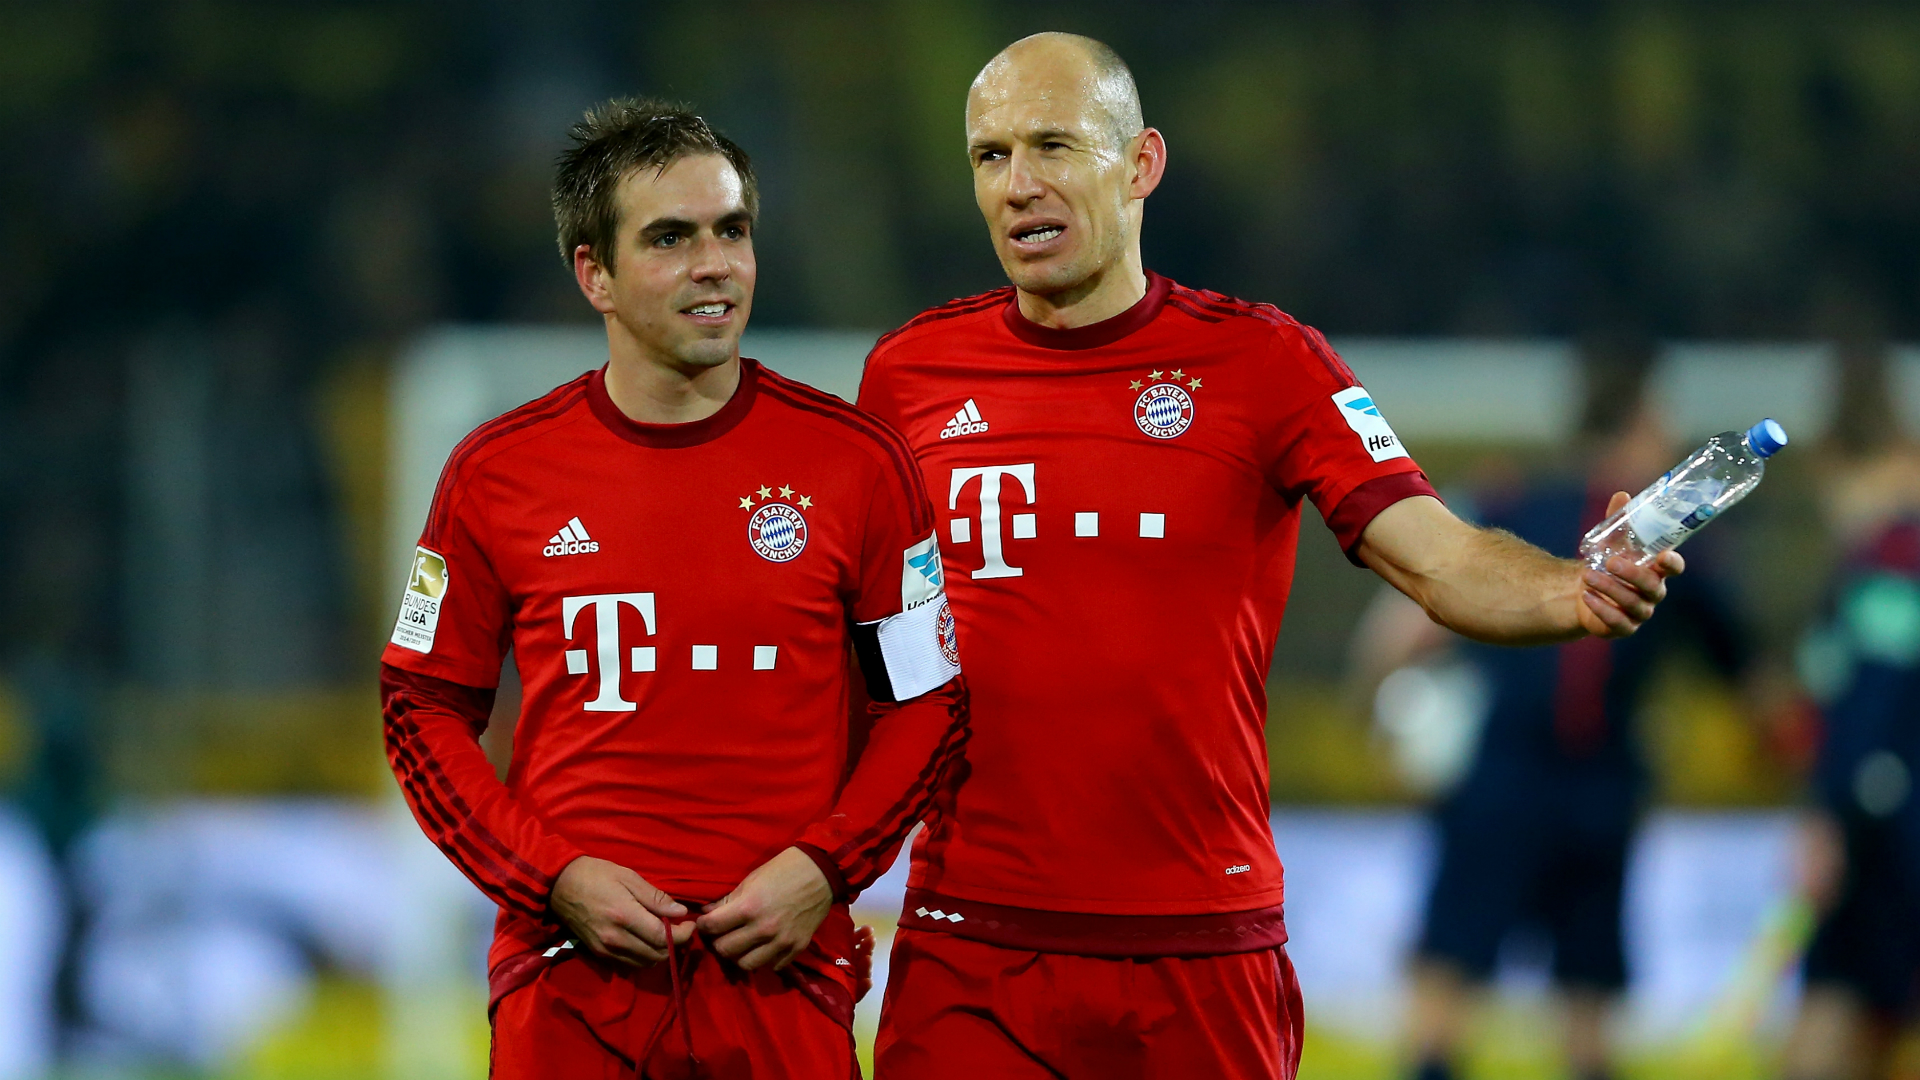 Bayern winger Ribery loses bid to be fit to face Arsenal